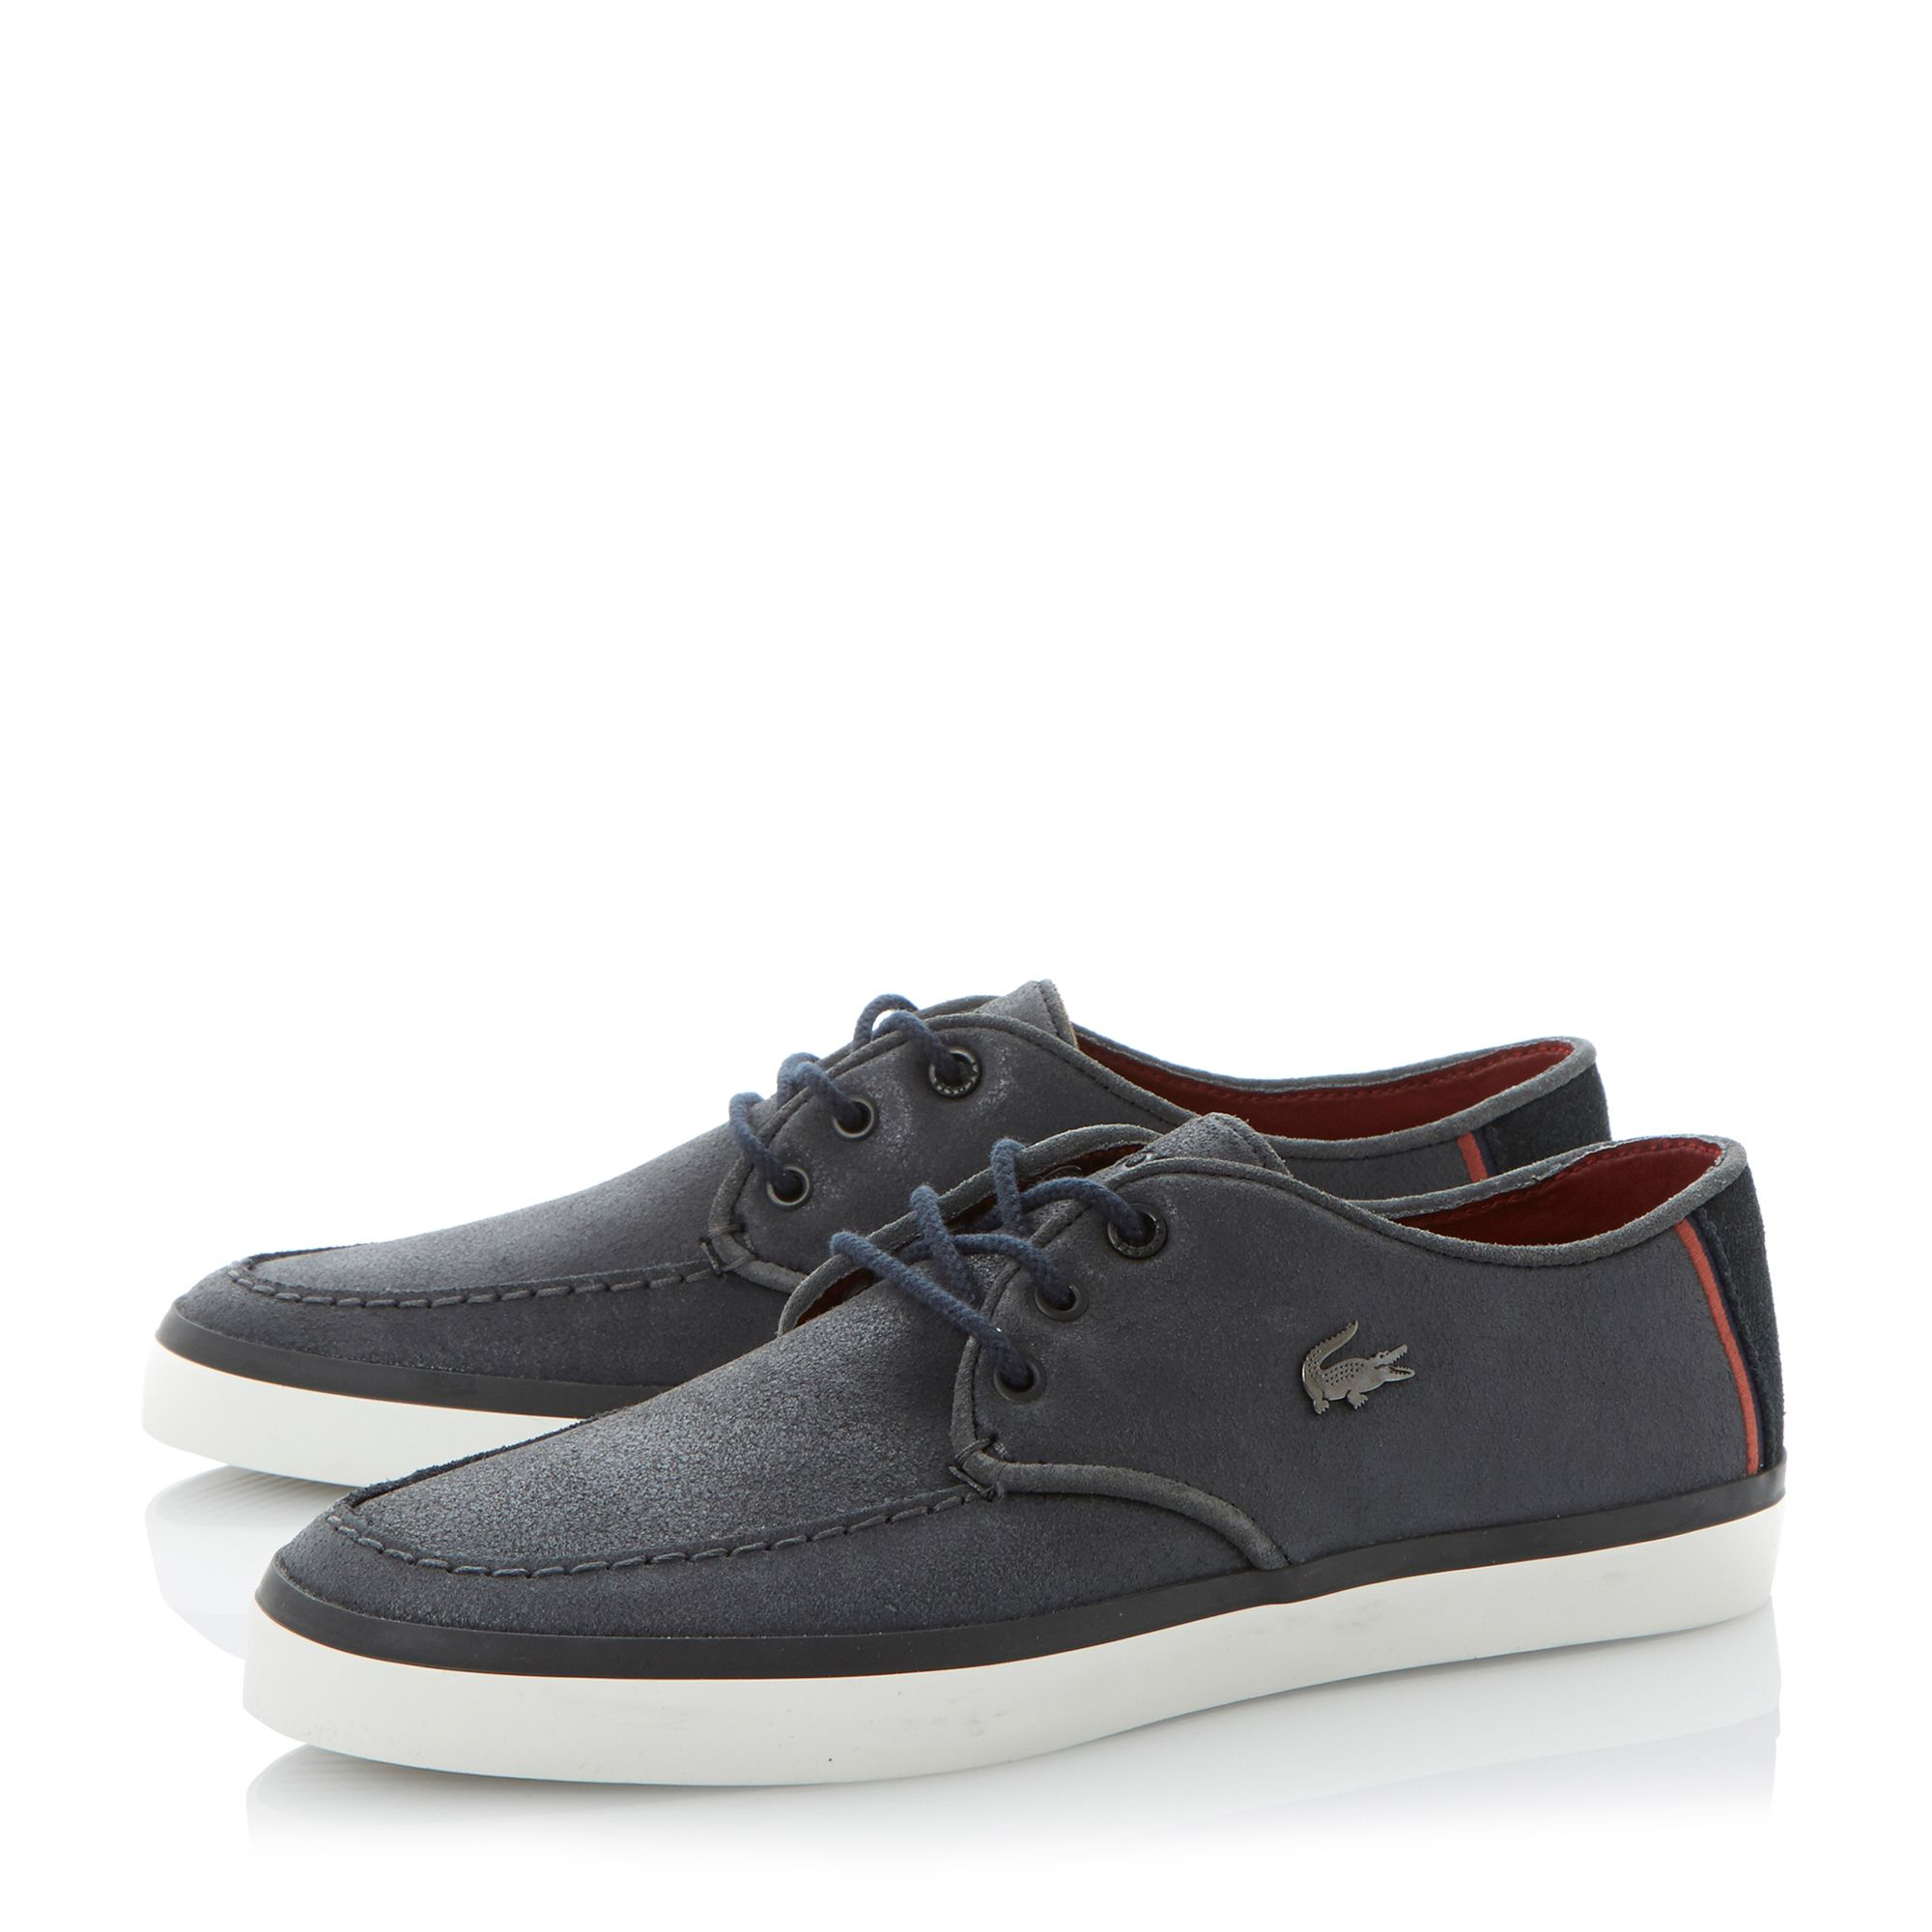 lacoste sevrin eyelet apron casual lace up shoes in blue for men navy lyst. Black Bedroom Furniture Sets. Home Design Ideas